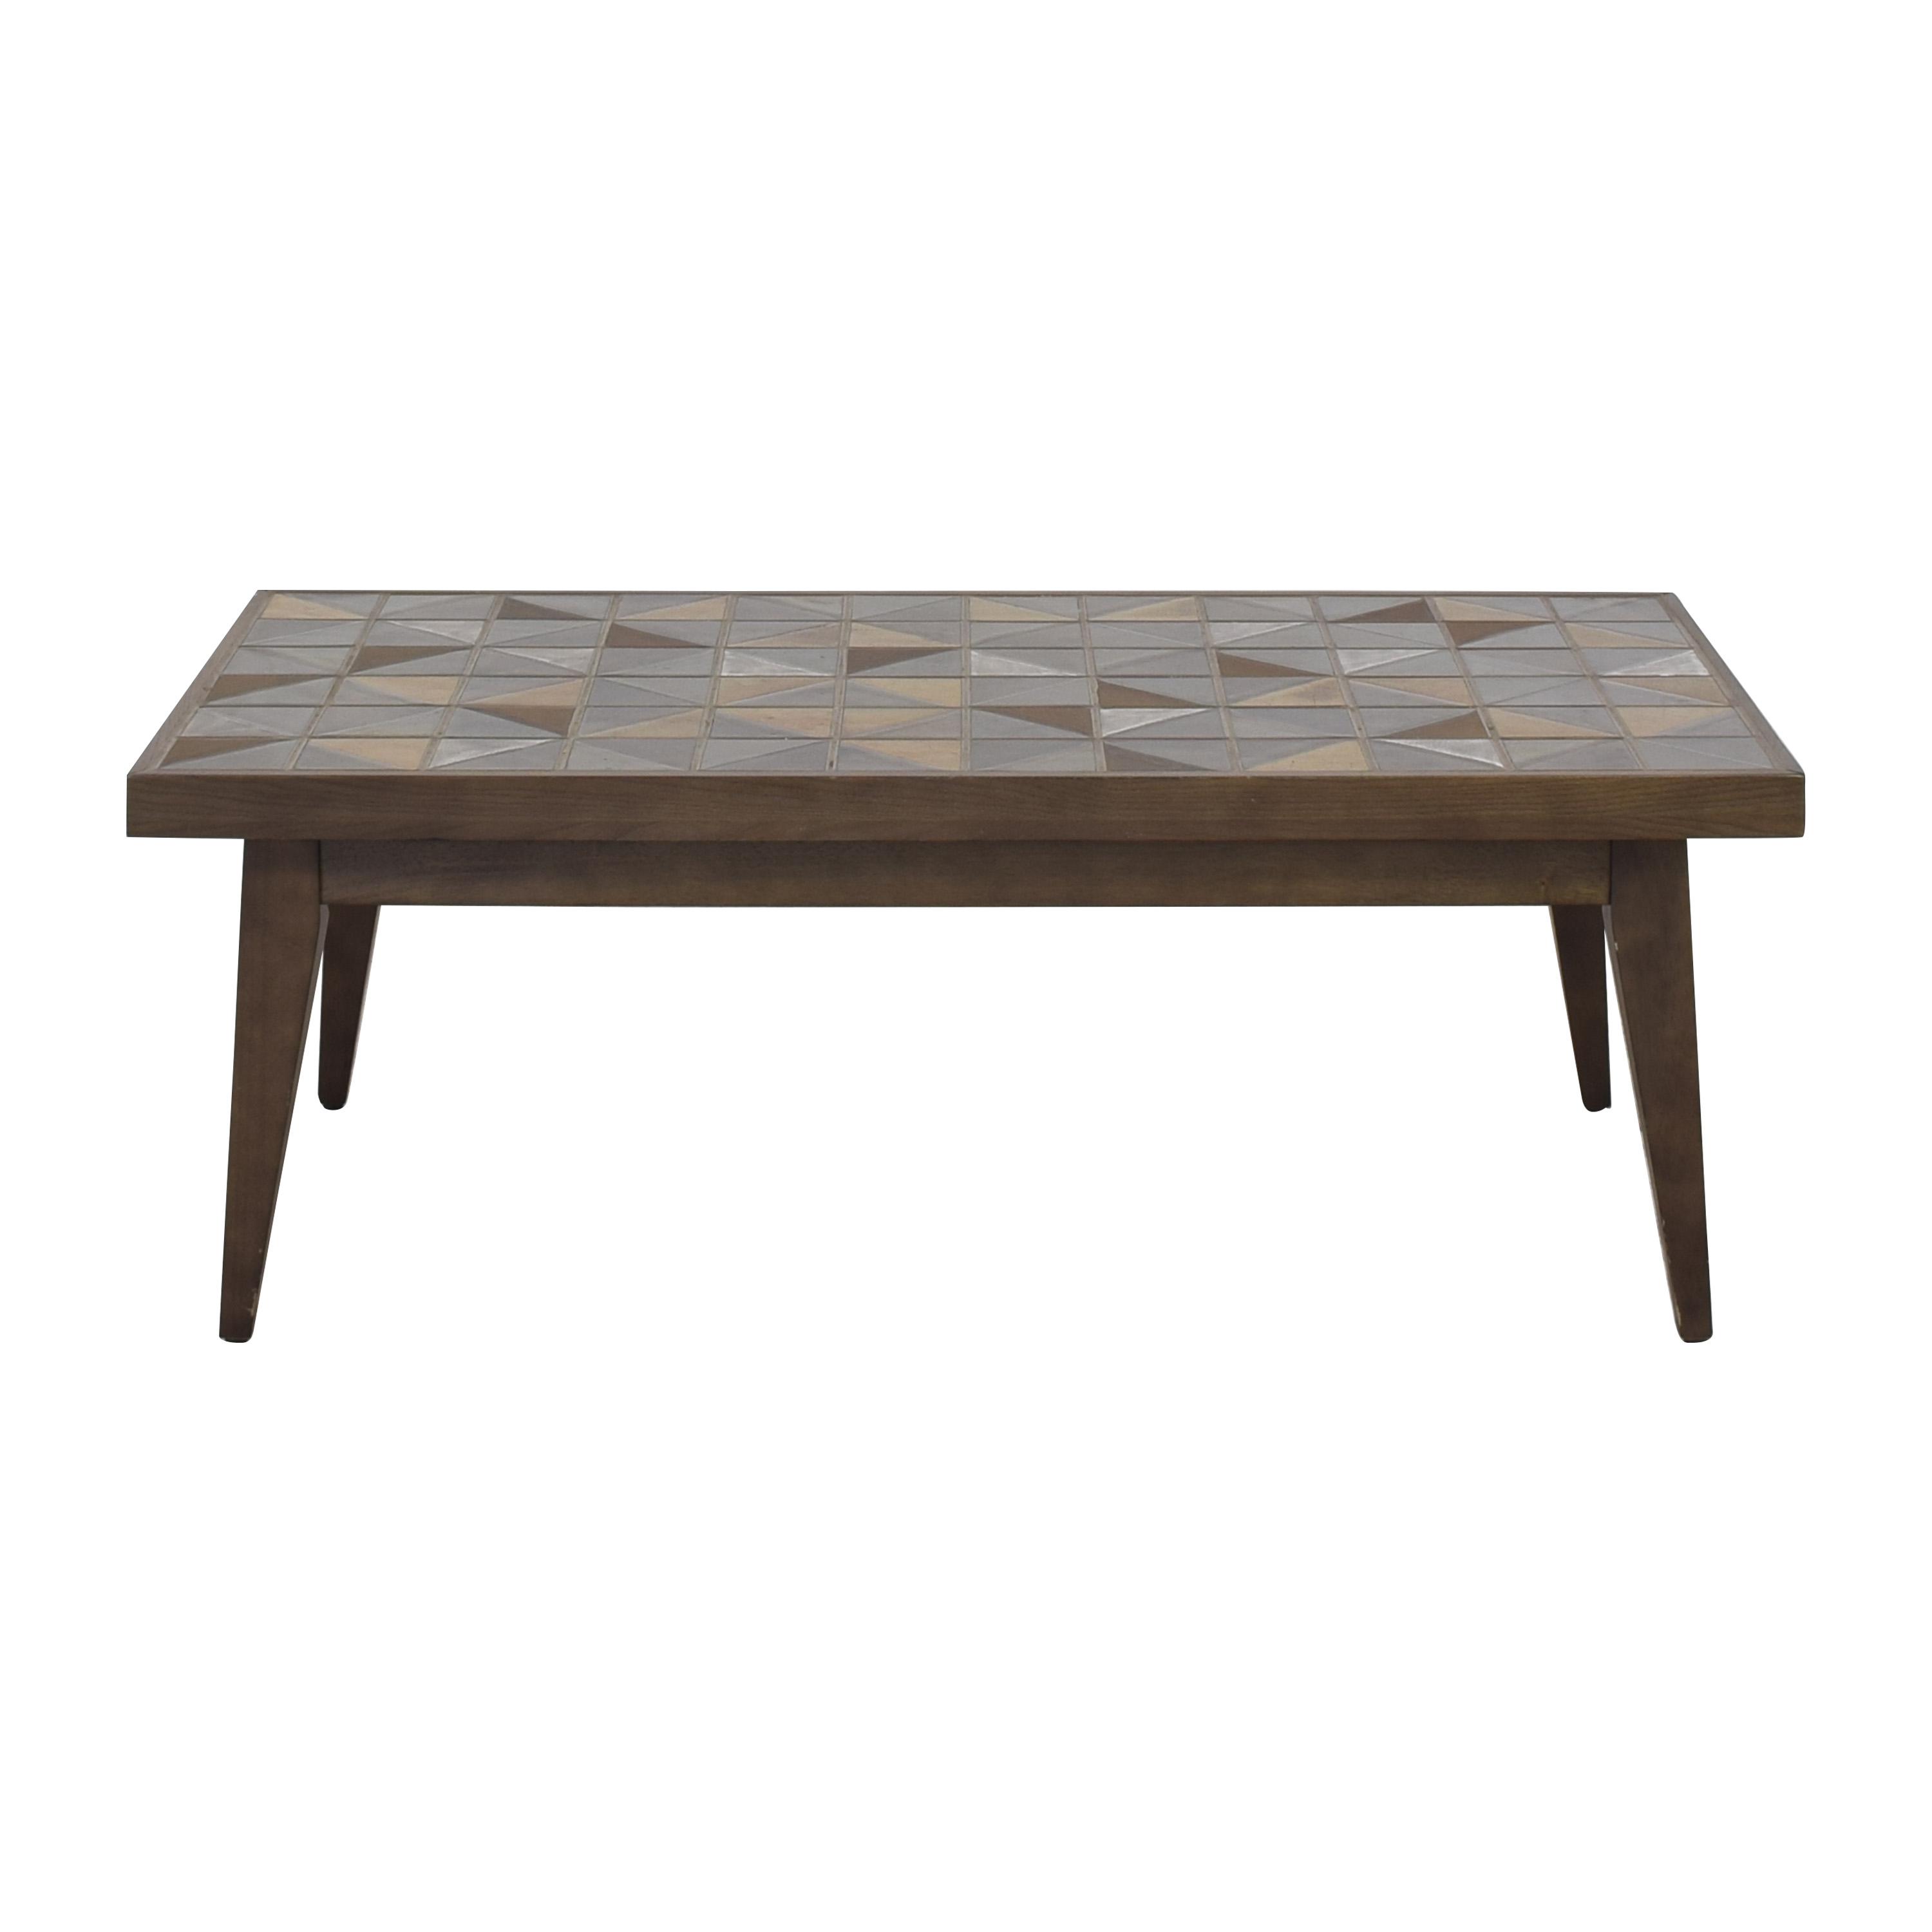 shop West Elm Lubna Chowdhary Coffee Table West Elm